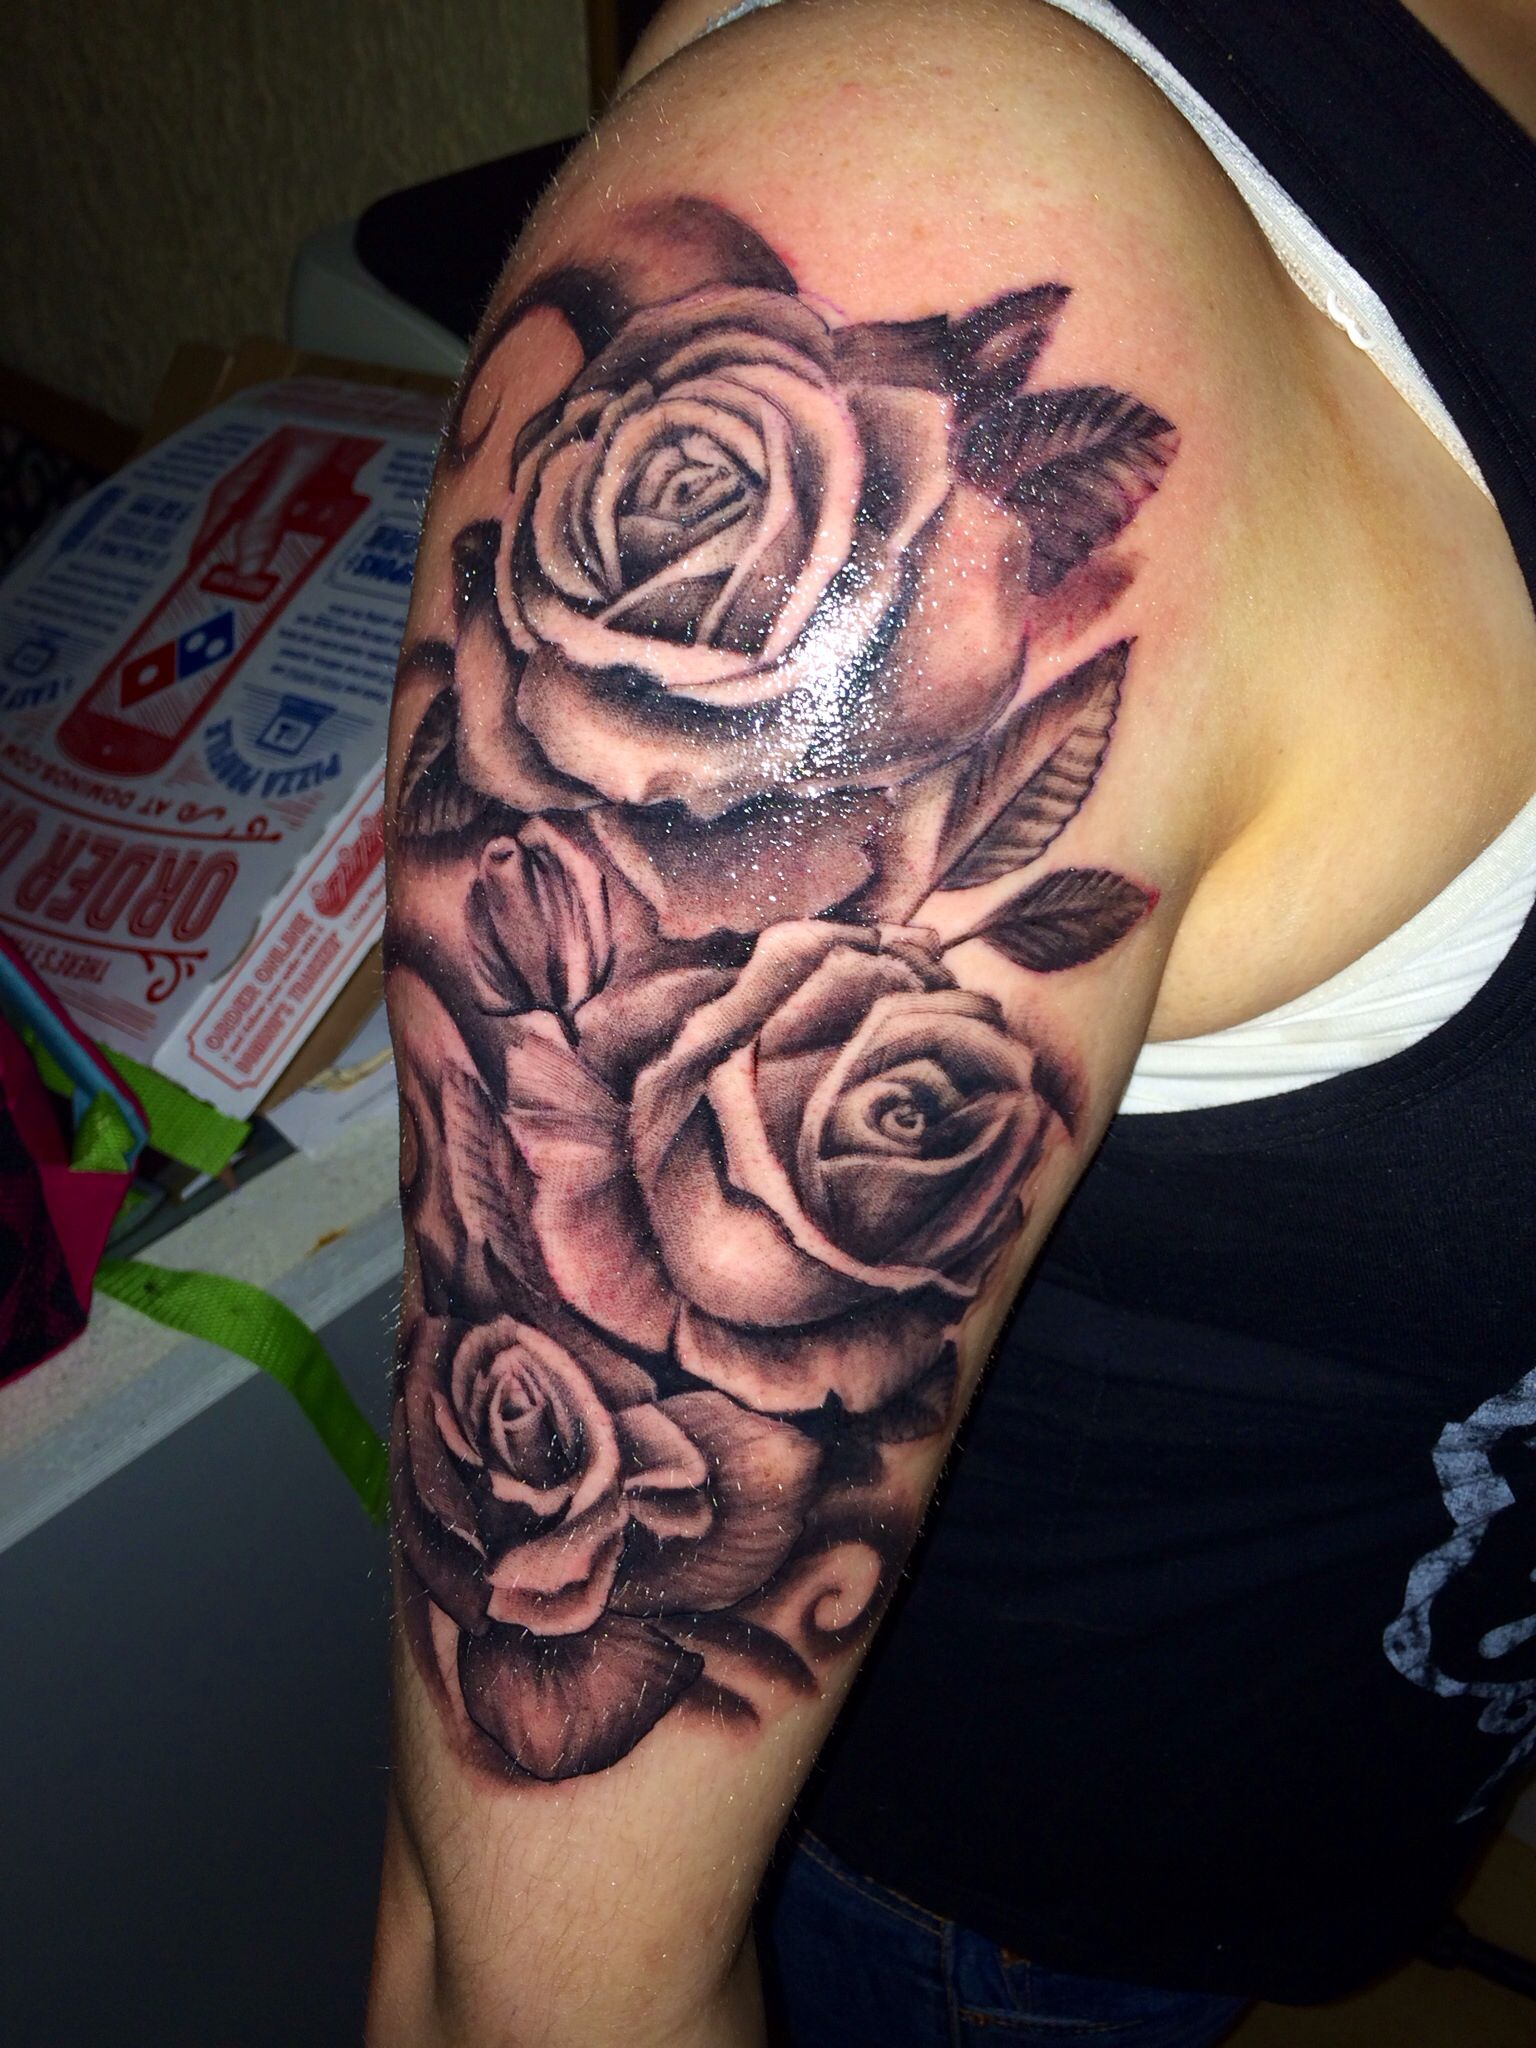 Just got this the last night percent idea for rose tattoos or half